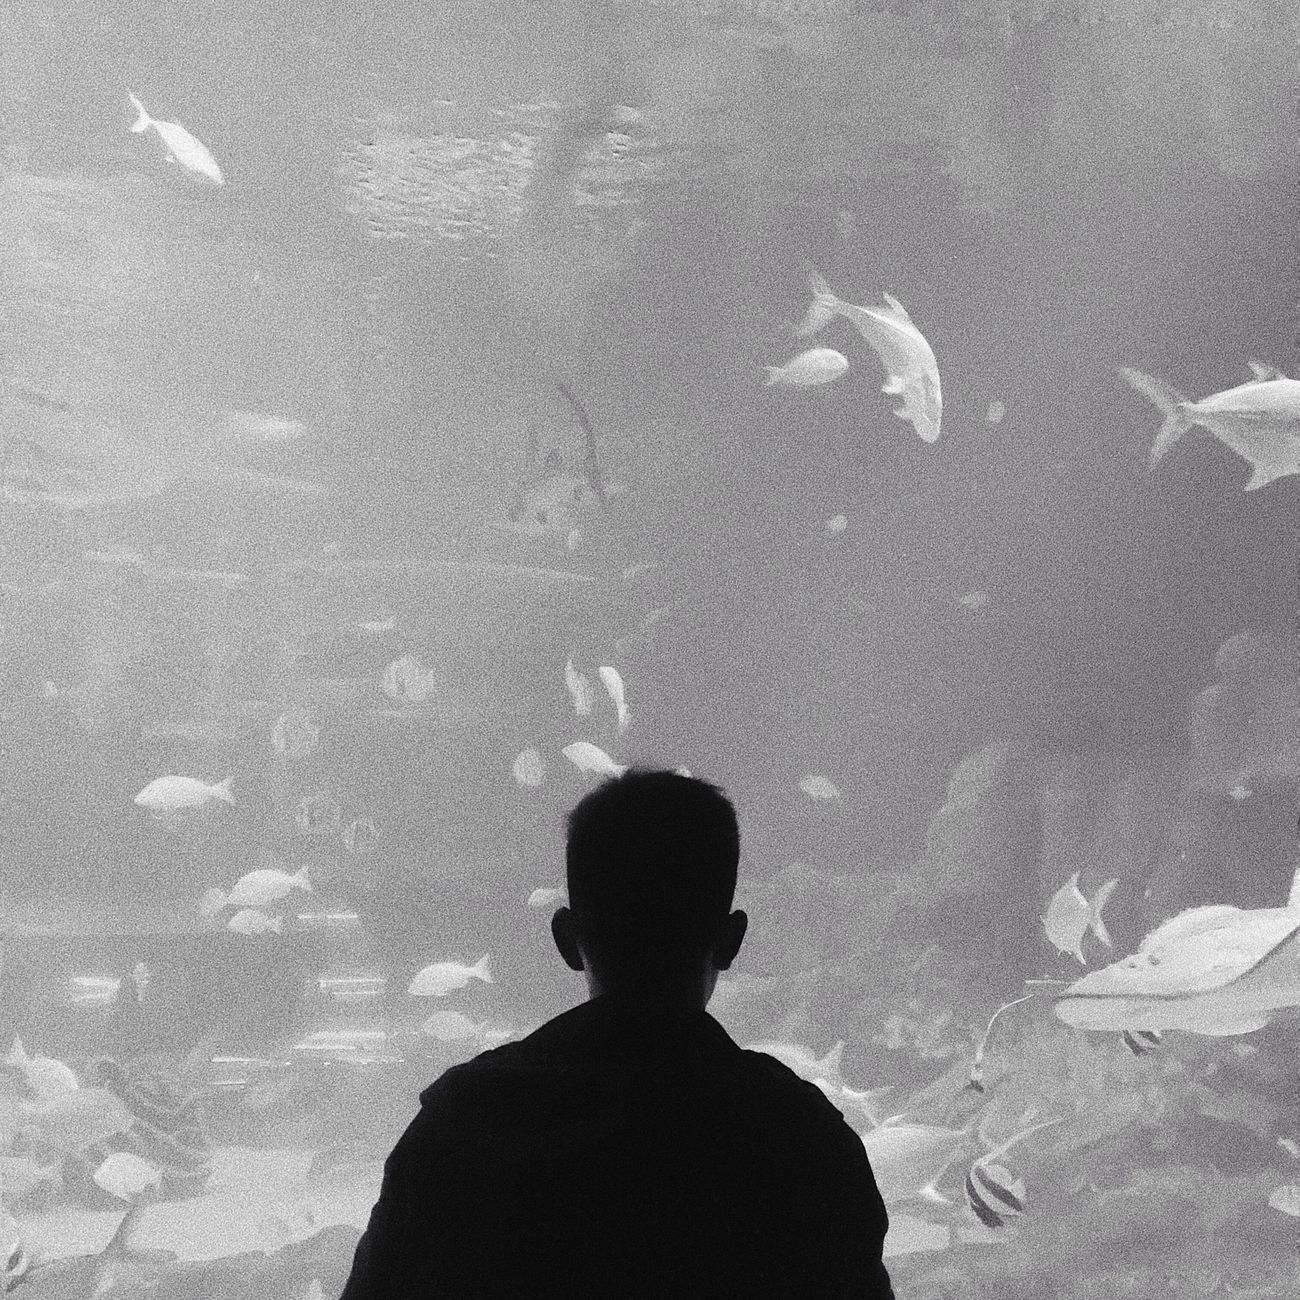 Fish Aquarium Animal Themes Real People Silhouette Lifestyles Swimming Large Group Of Animals One Person Leisure Activity Watching Nature Animals In The Wild Sea Life Indoors  Stingray Water People Day